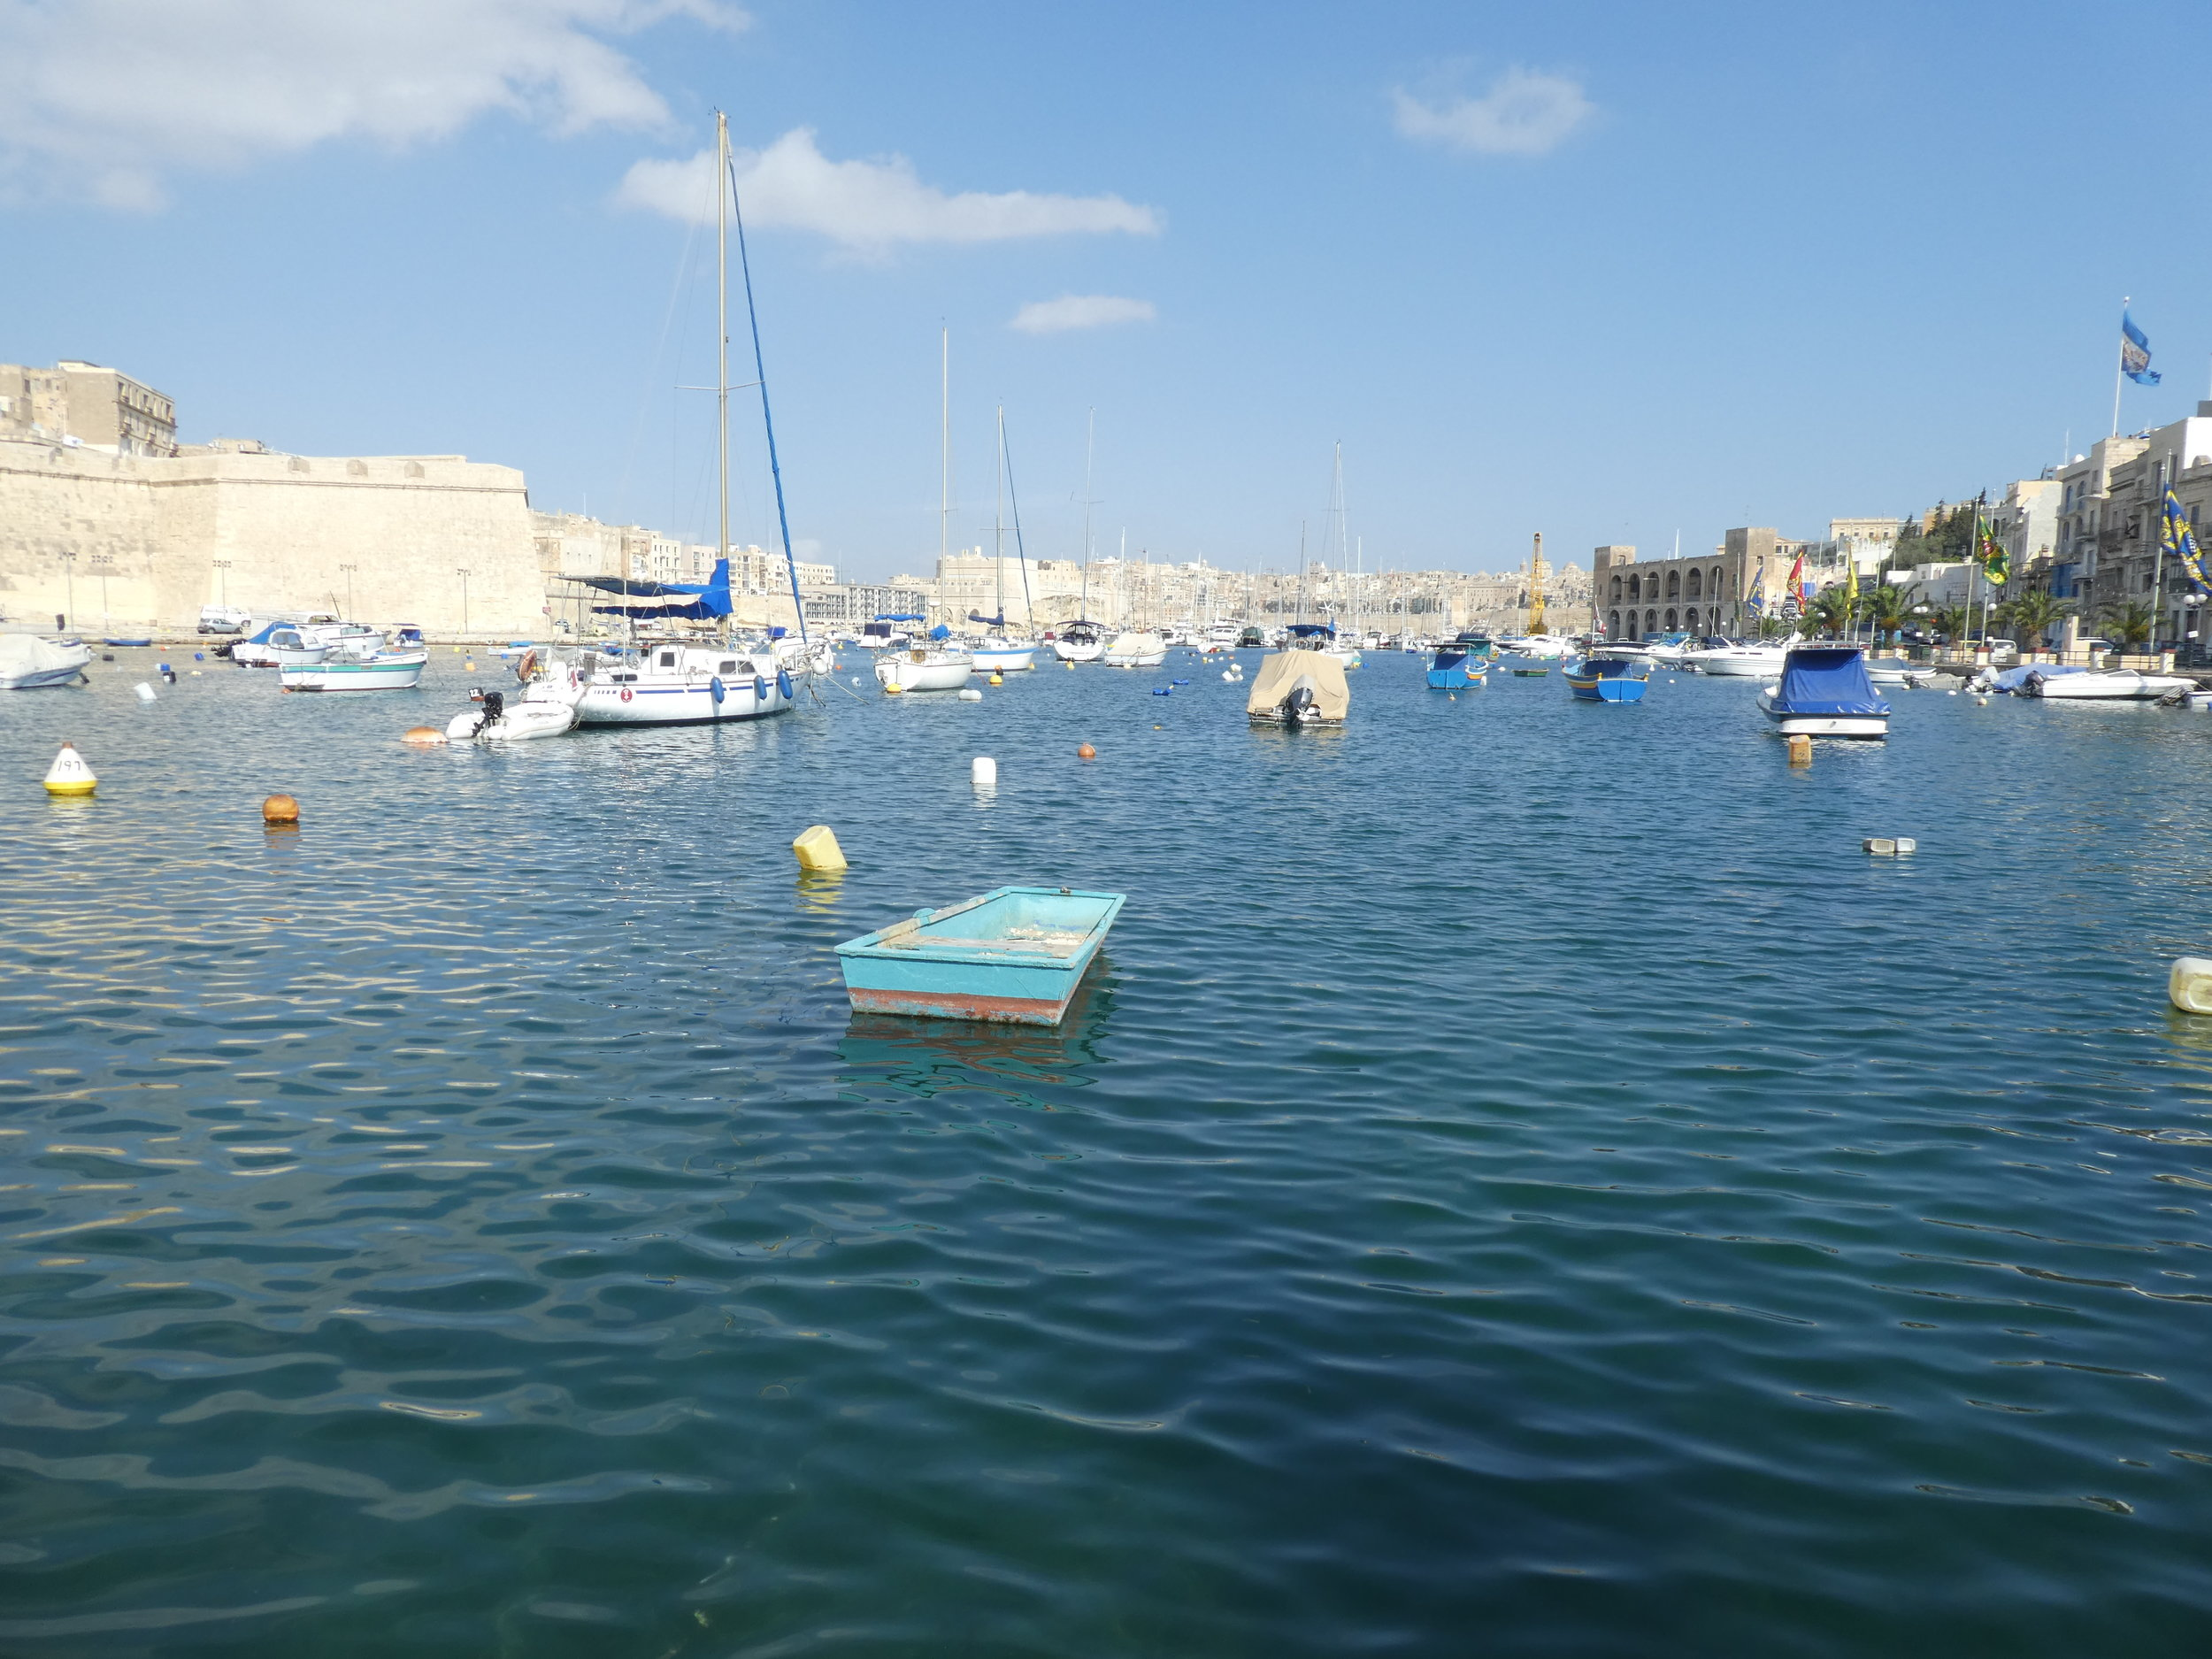 At the Kalkara waterfront. The village feast is on, but all is quiet during the day.